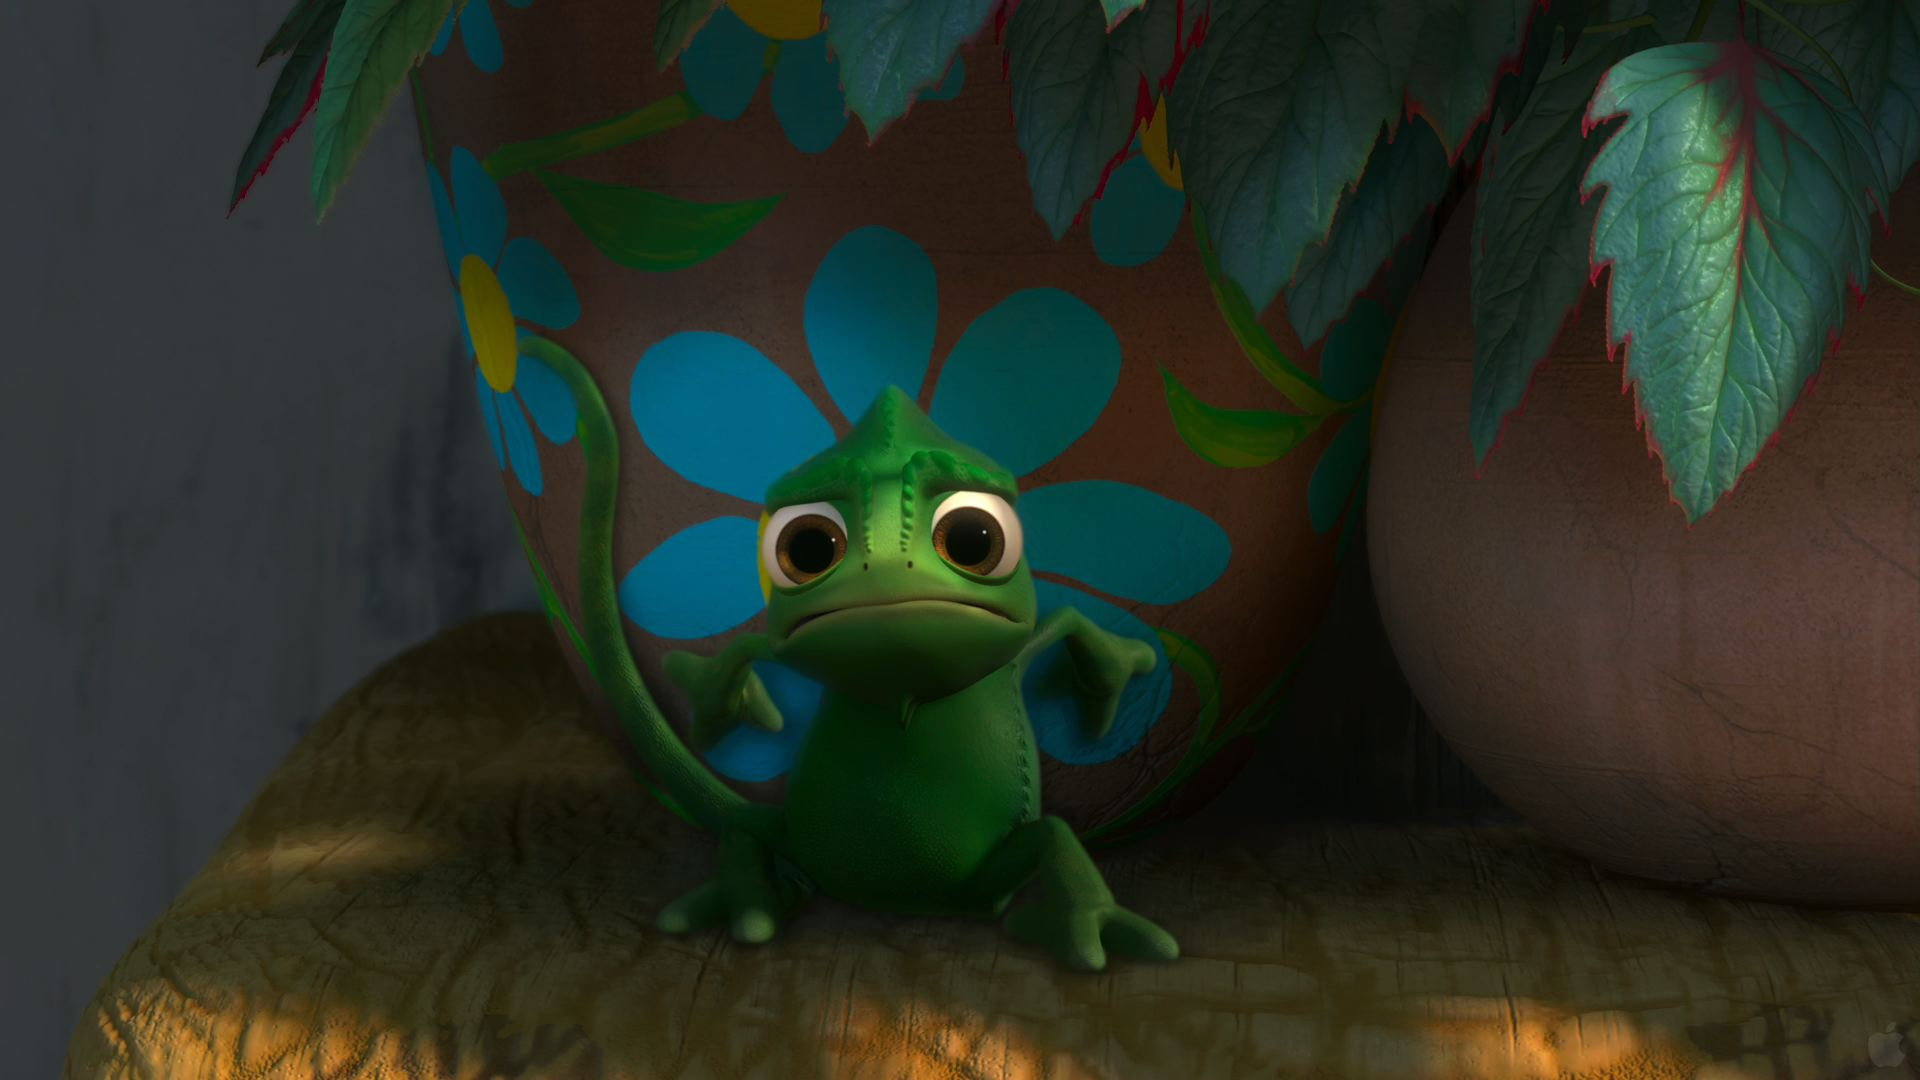 Pascal the Cute Chameleon from Disneys Tangled wallpaper   Click 1920x1080